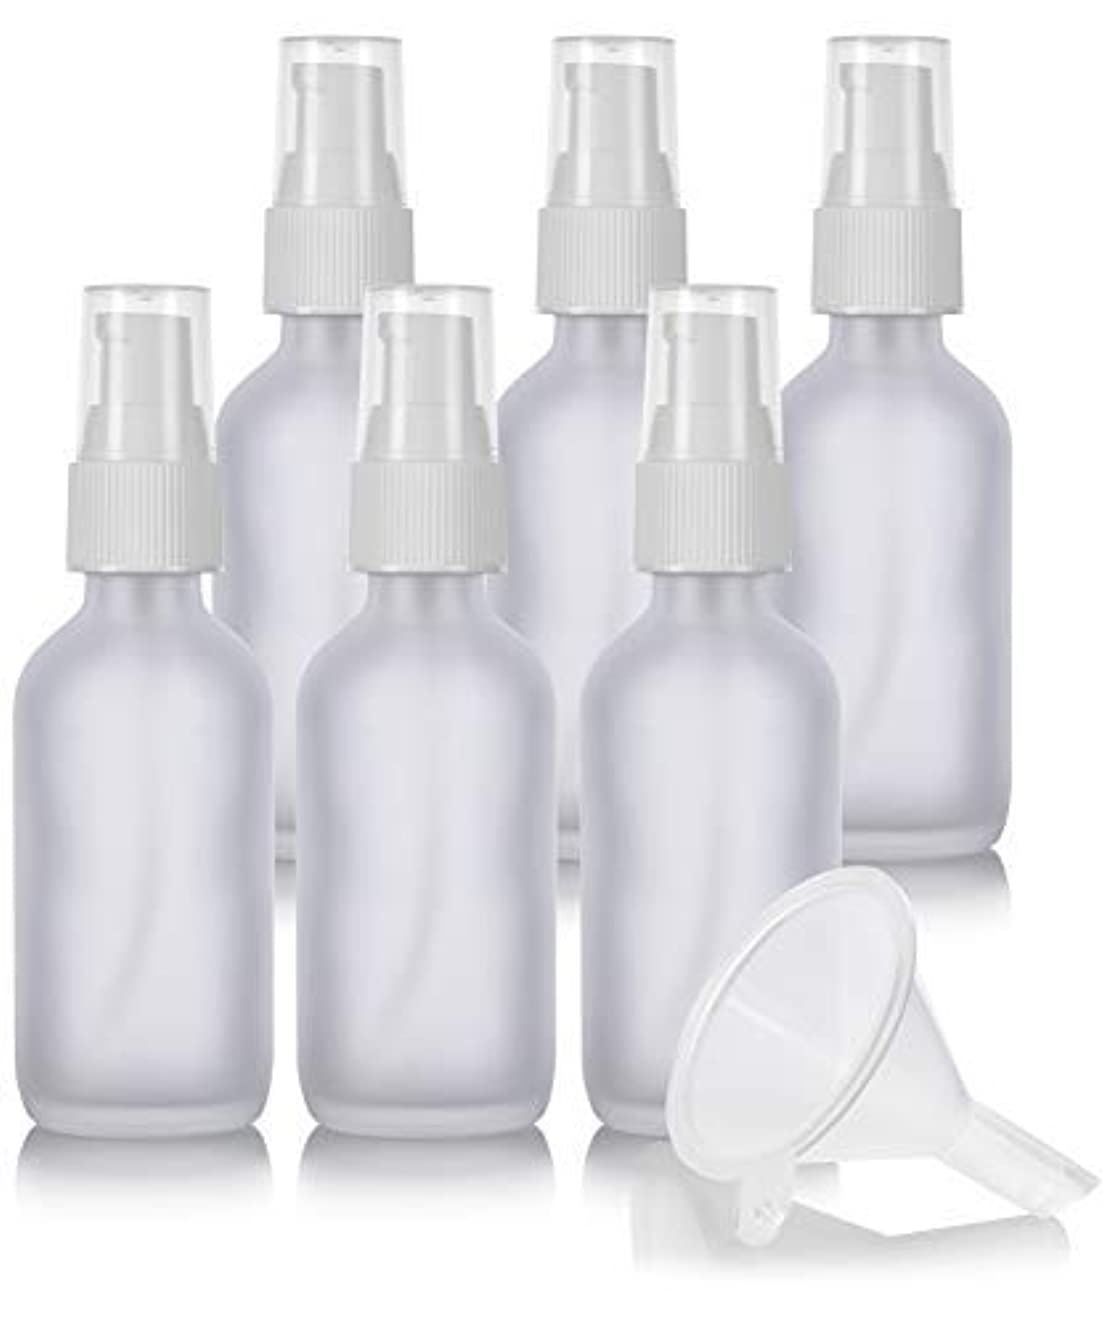 アカデミー笑フロント2 oz Frosted Clear Glass Boston Round White Treatment Pump Bottle (6 Pack) + Funnel and Labels for Cosmetics,...